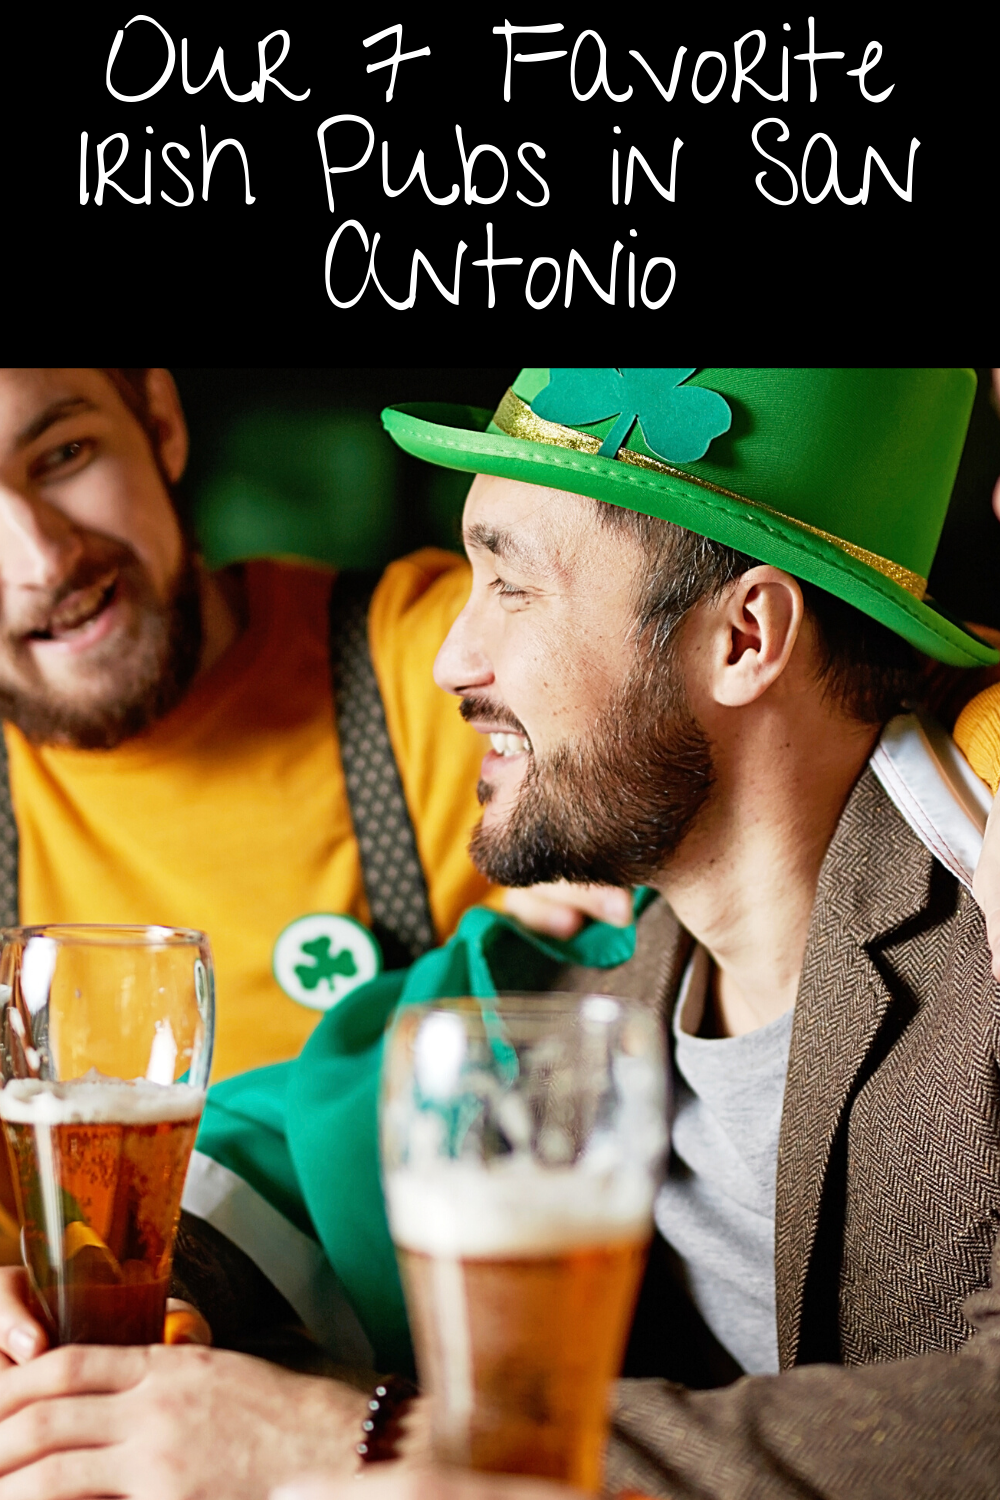 These are our favorite Irish pubs in San Antonio, check out these awesome spots for celebrating St. Patrick's Day in San Antonio.